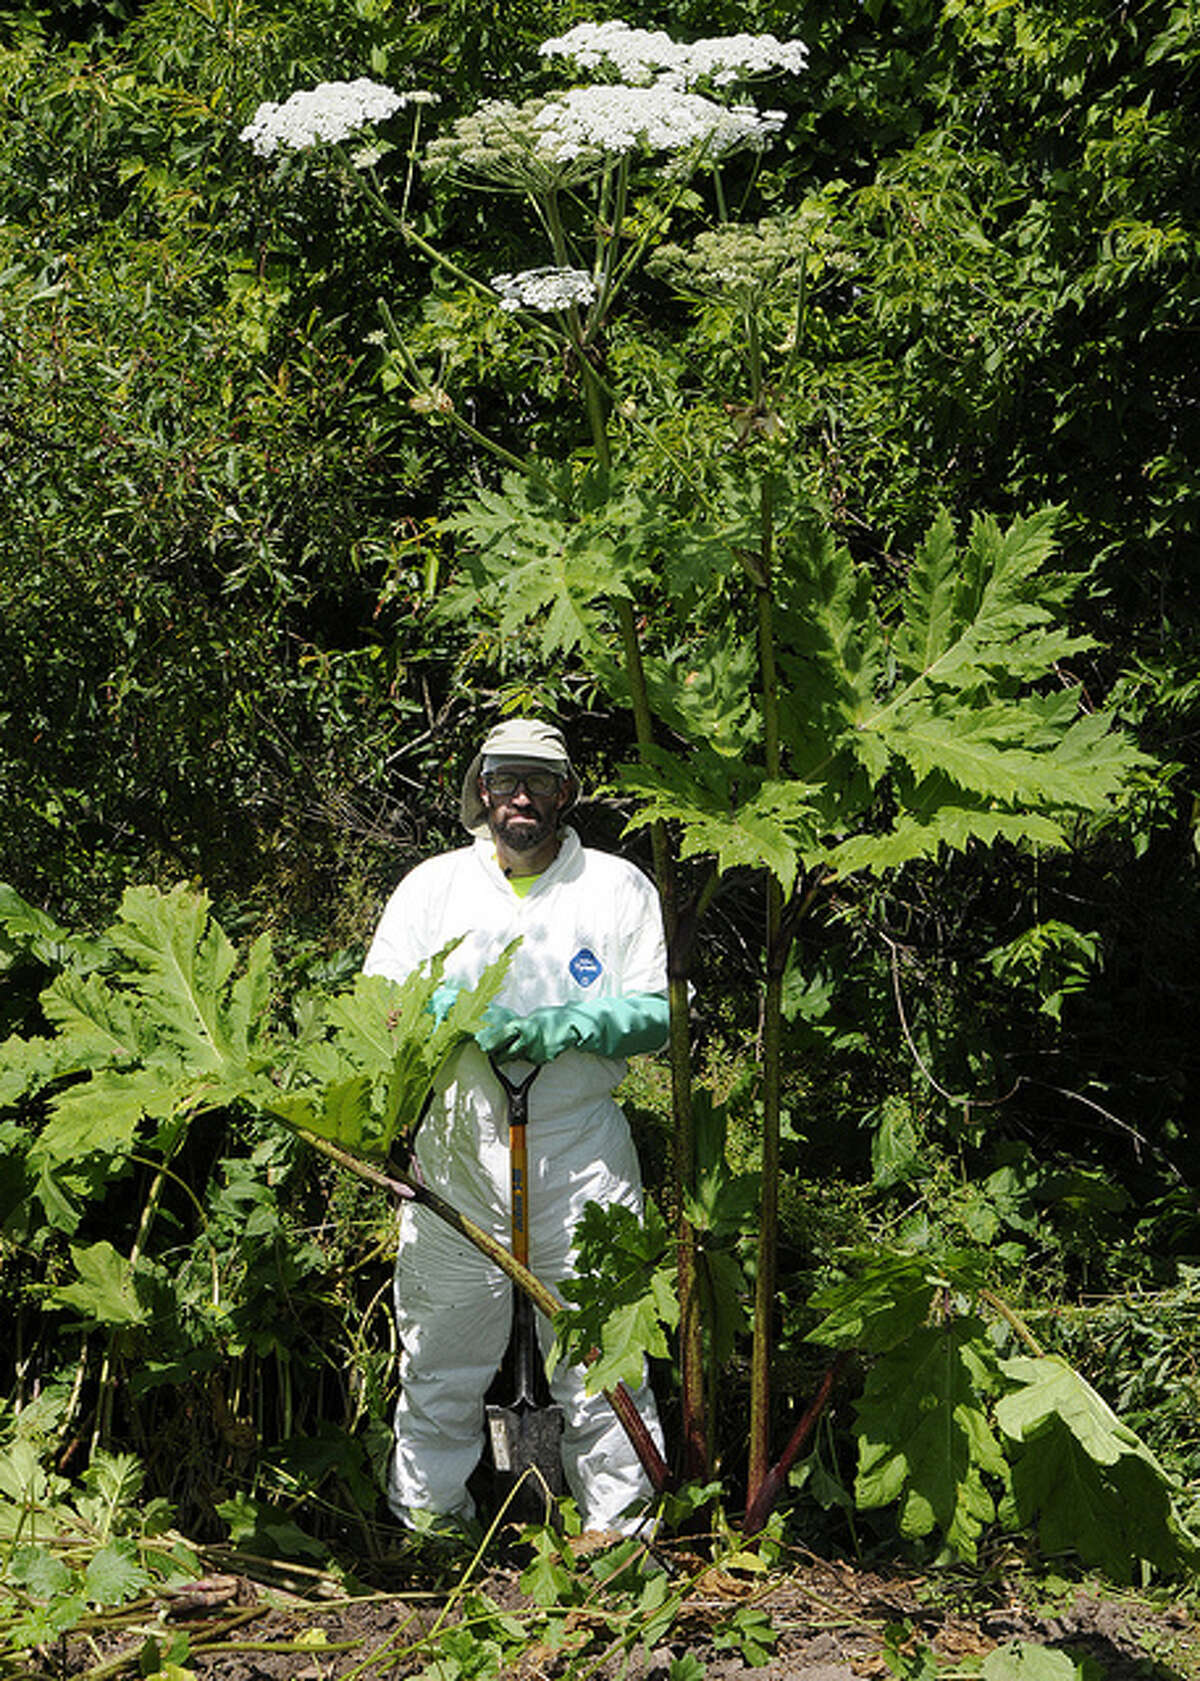 Giant hogweed can grow up to 14 feet tall. It has a toxic sap that can cause burns, blisters and scarring on the skin, and blindness if it gets into the eye.